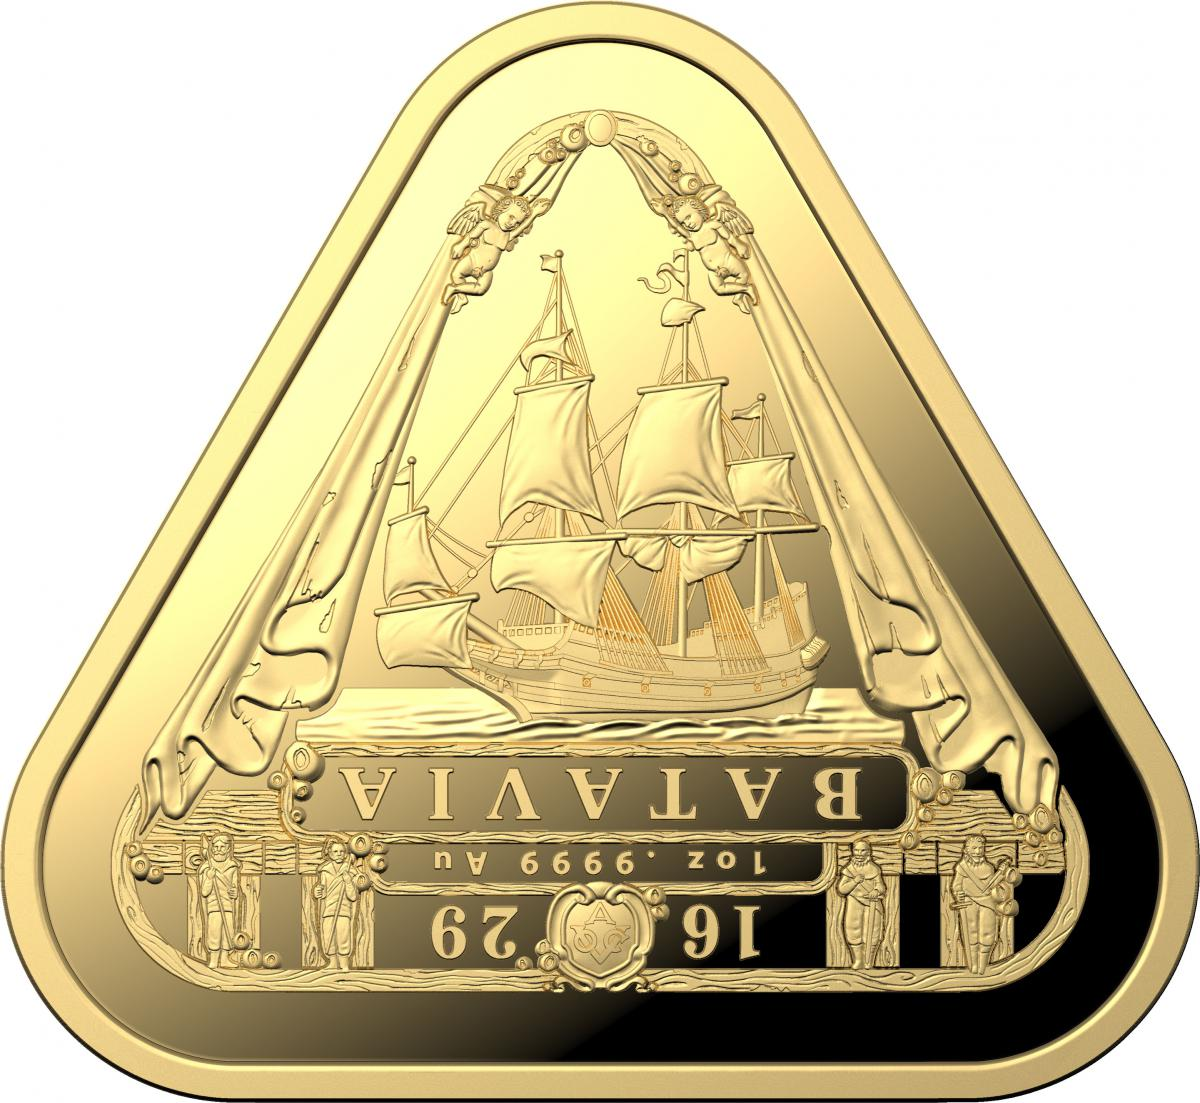 2019 1 oz Australia Triangular - Batavia .9999 Gold Coin BU